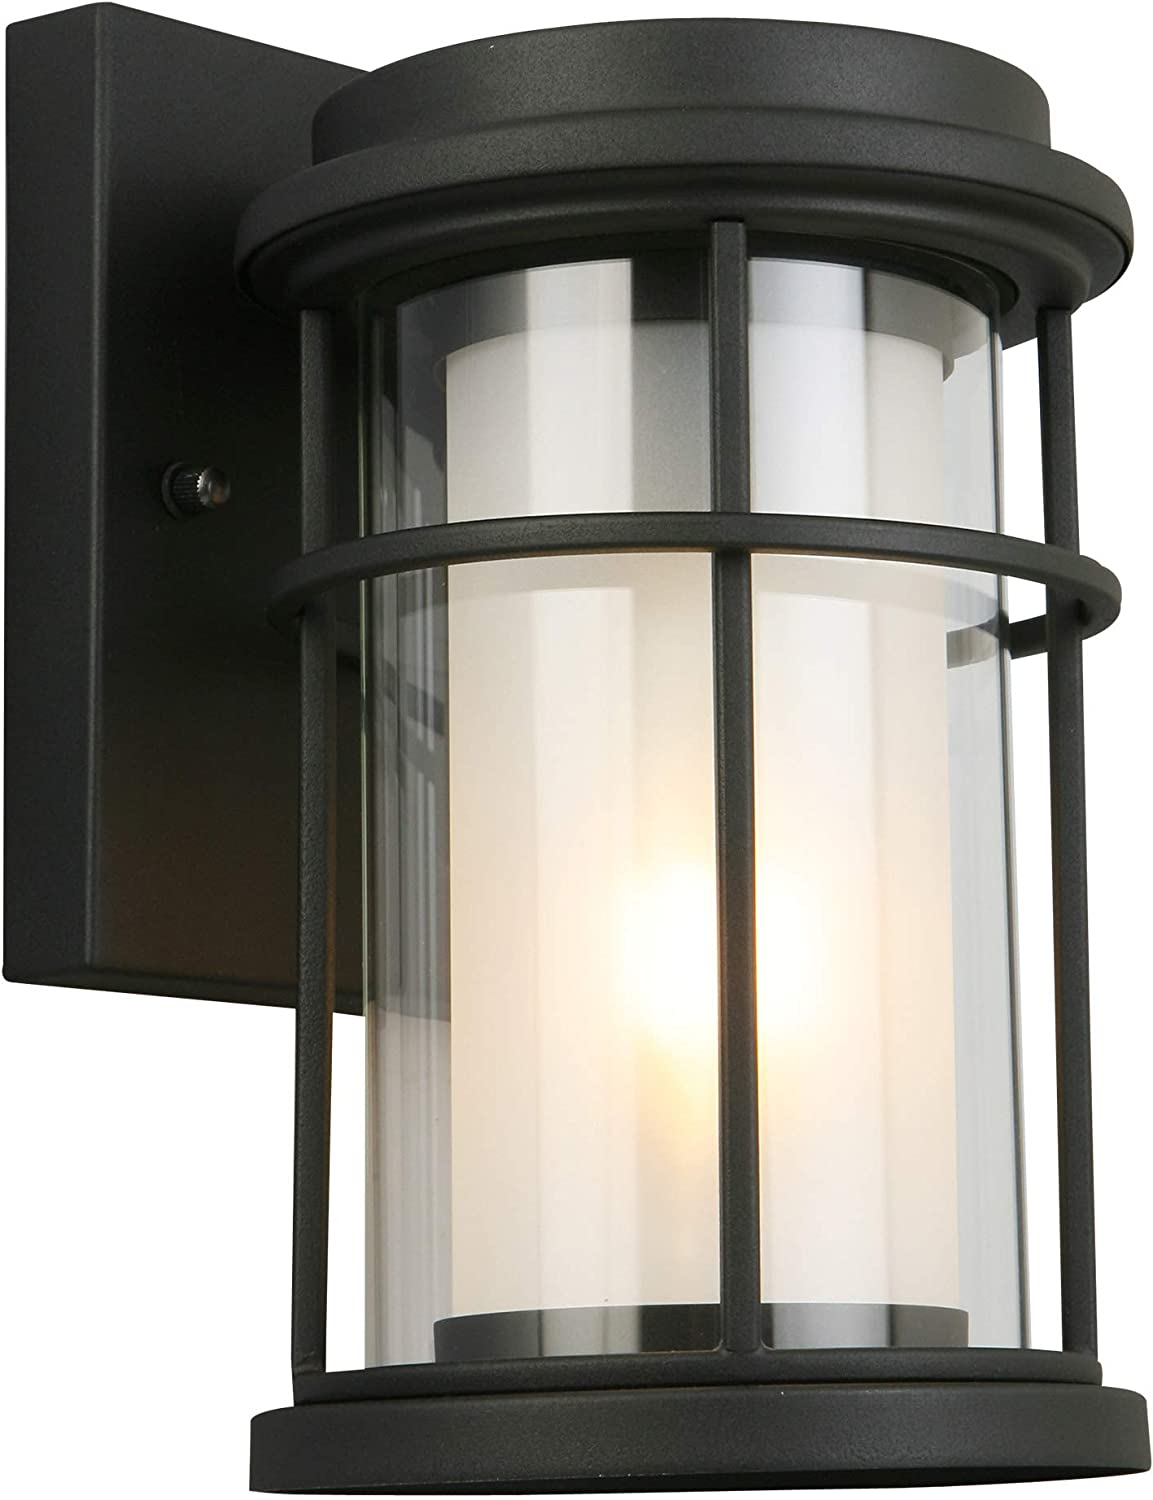 Three Light Outdoor Pendant Matte Black Finish With Clear Seeded Glass Eglo Lighting 202805a Pinedale Porch Patio Lights Kolenik Pendant Lights